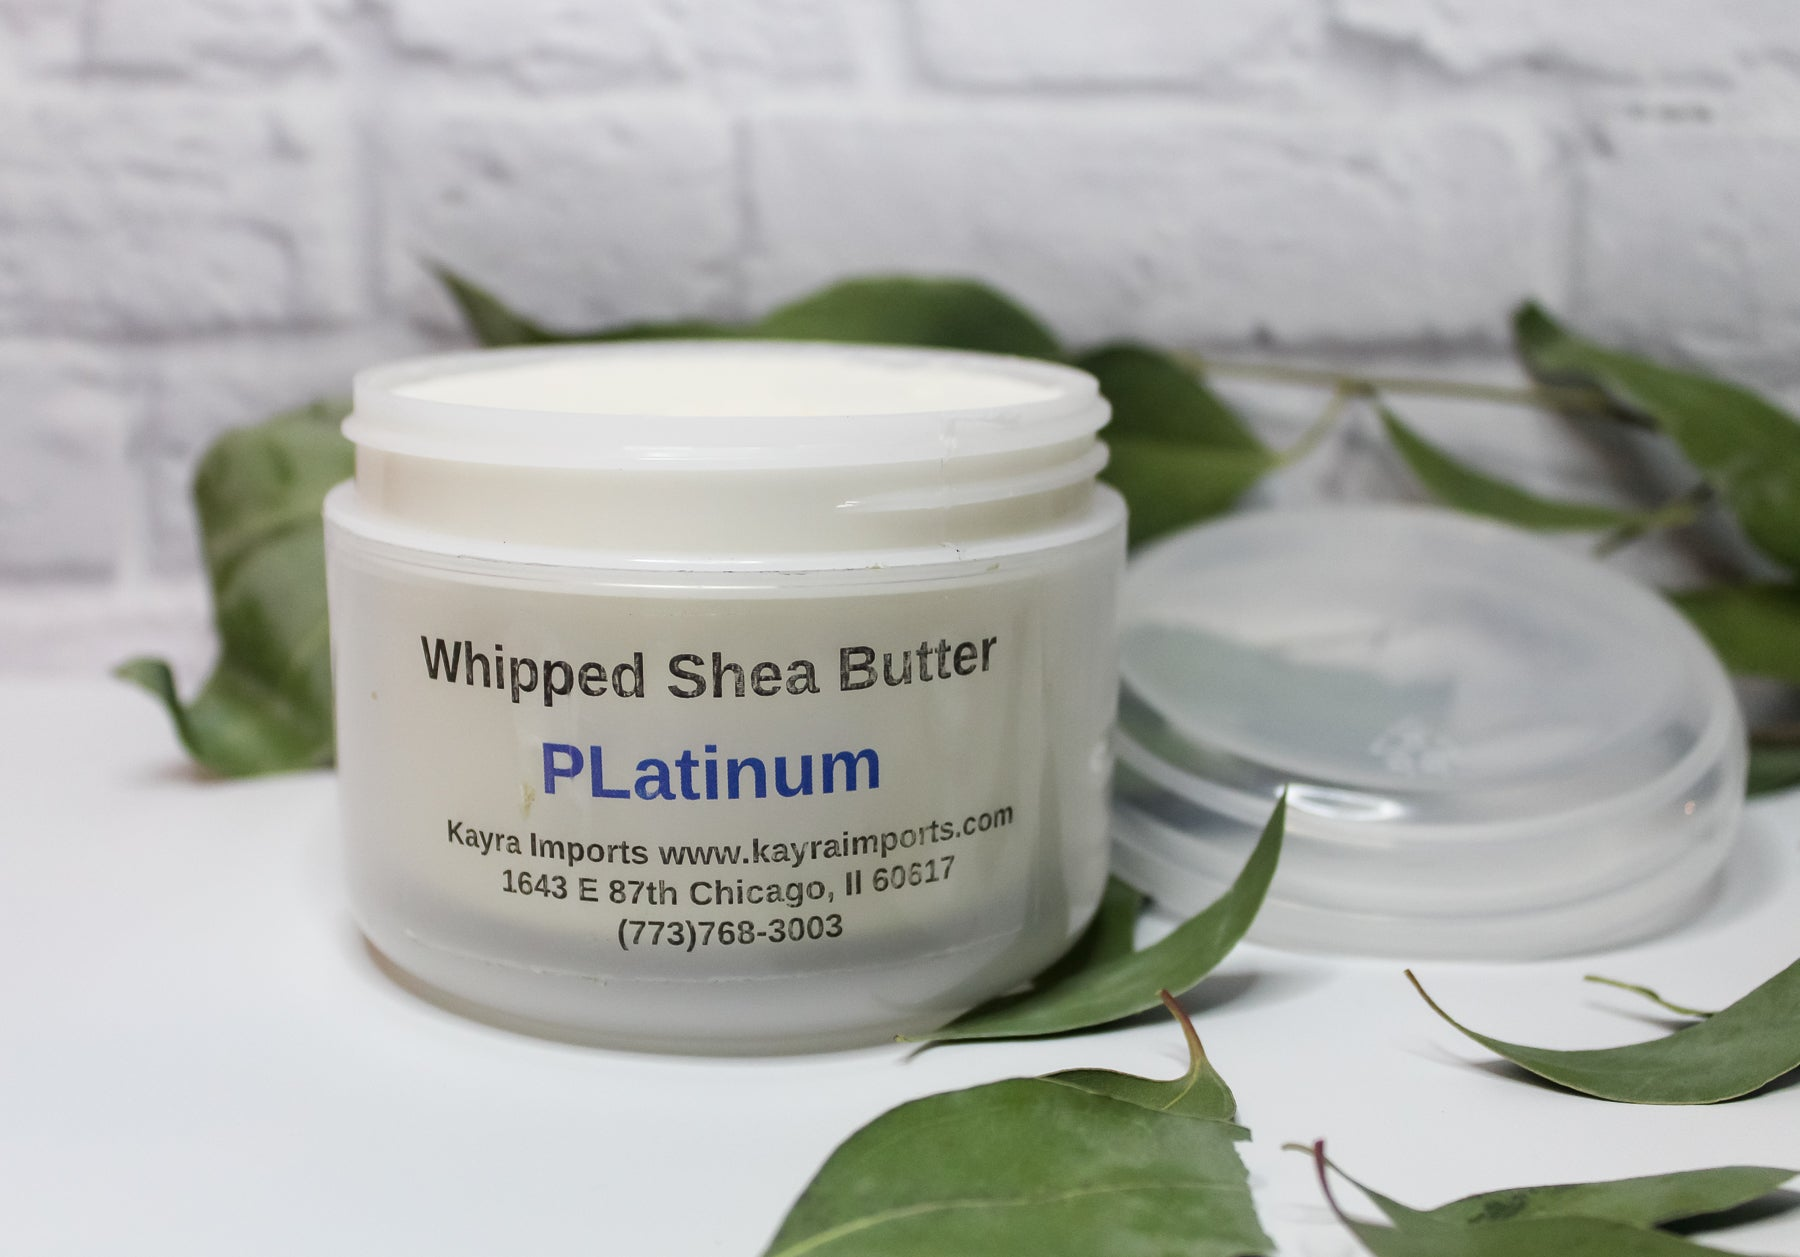 Platinum Whipped Shea Butter